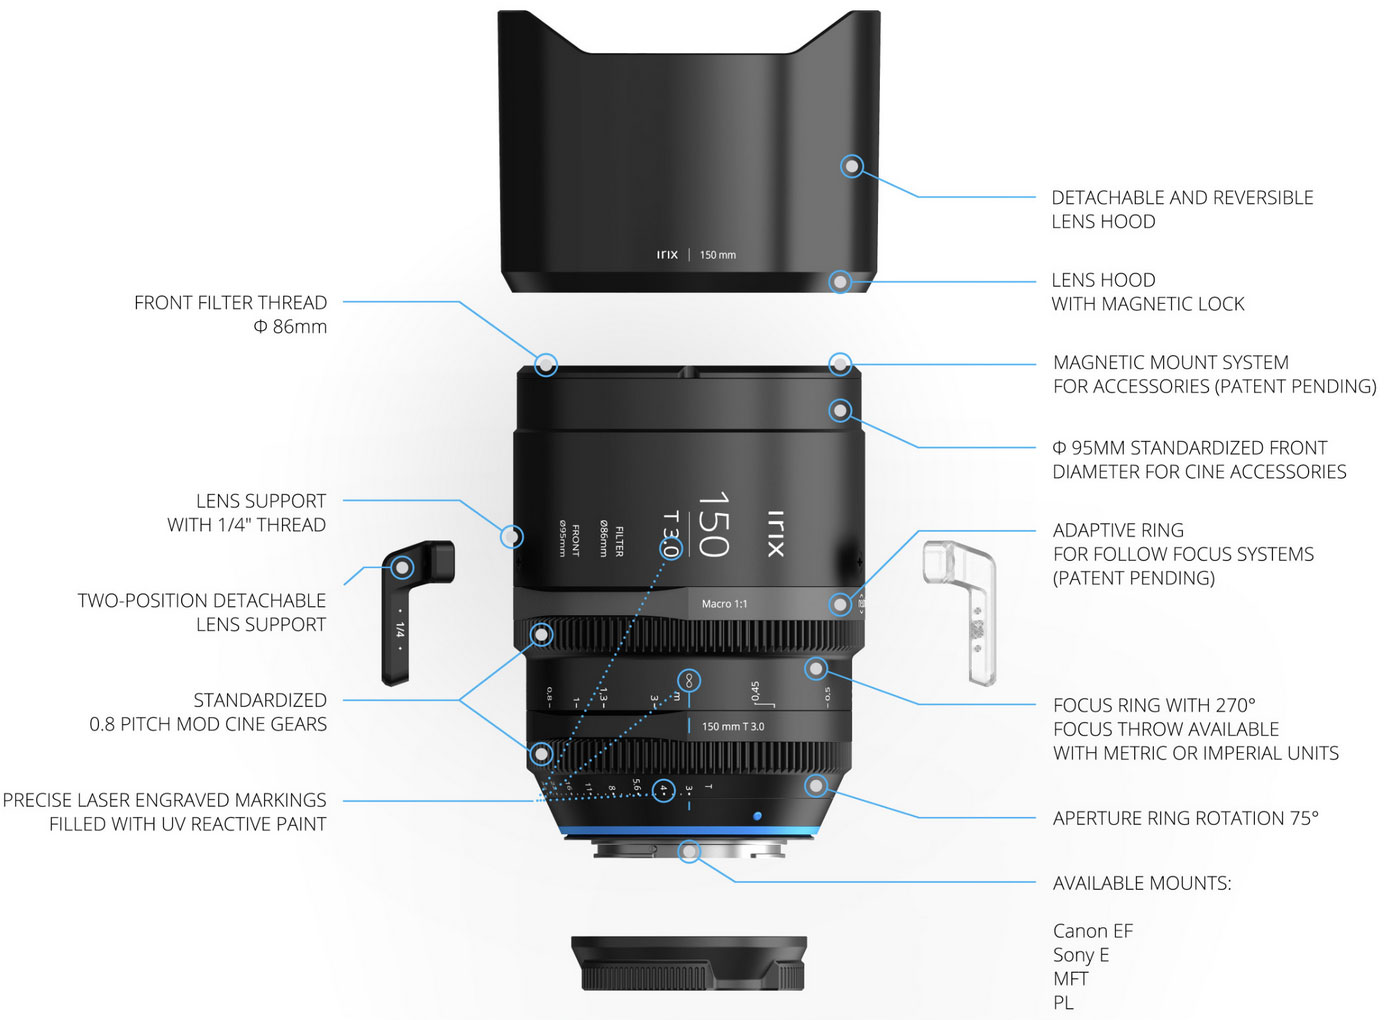 Irix Cine 150mm T 3.0 Macro 1:1 lens: the first in a new line of full frame lenses 6